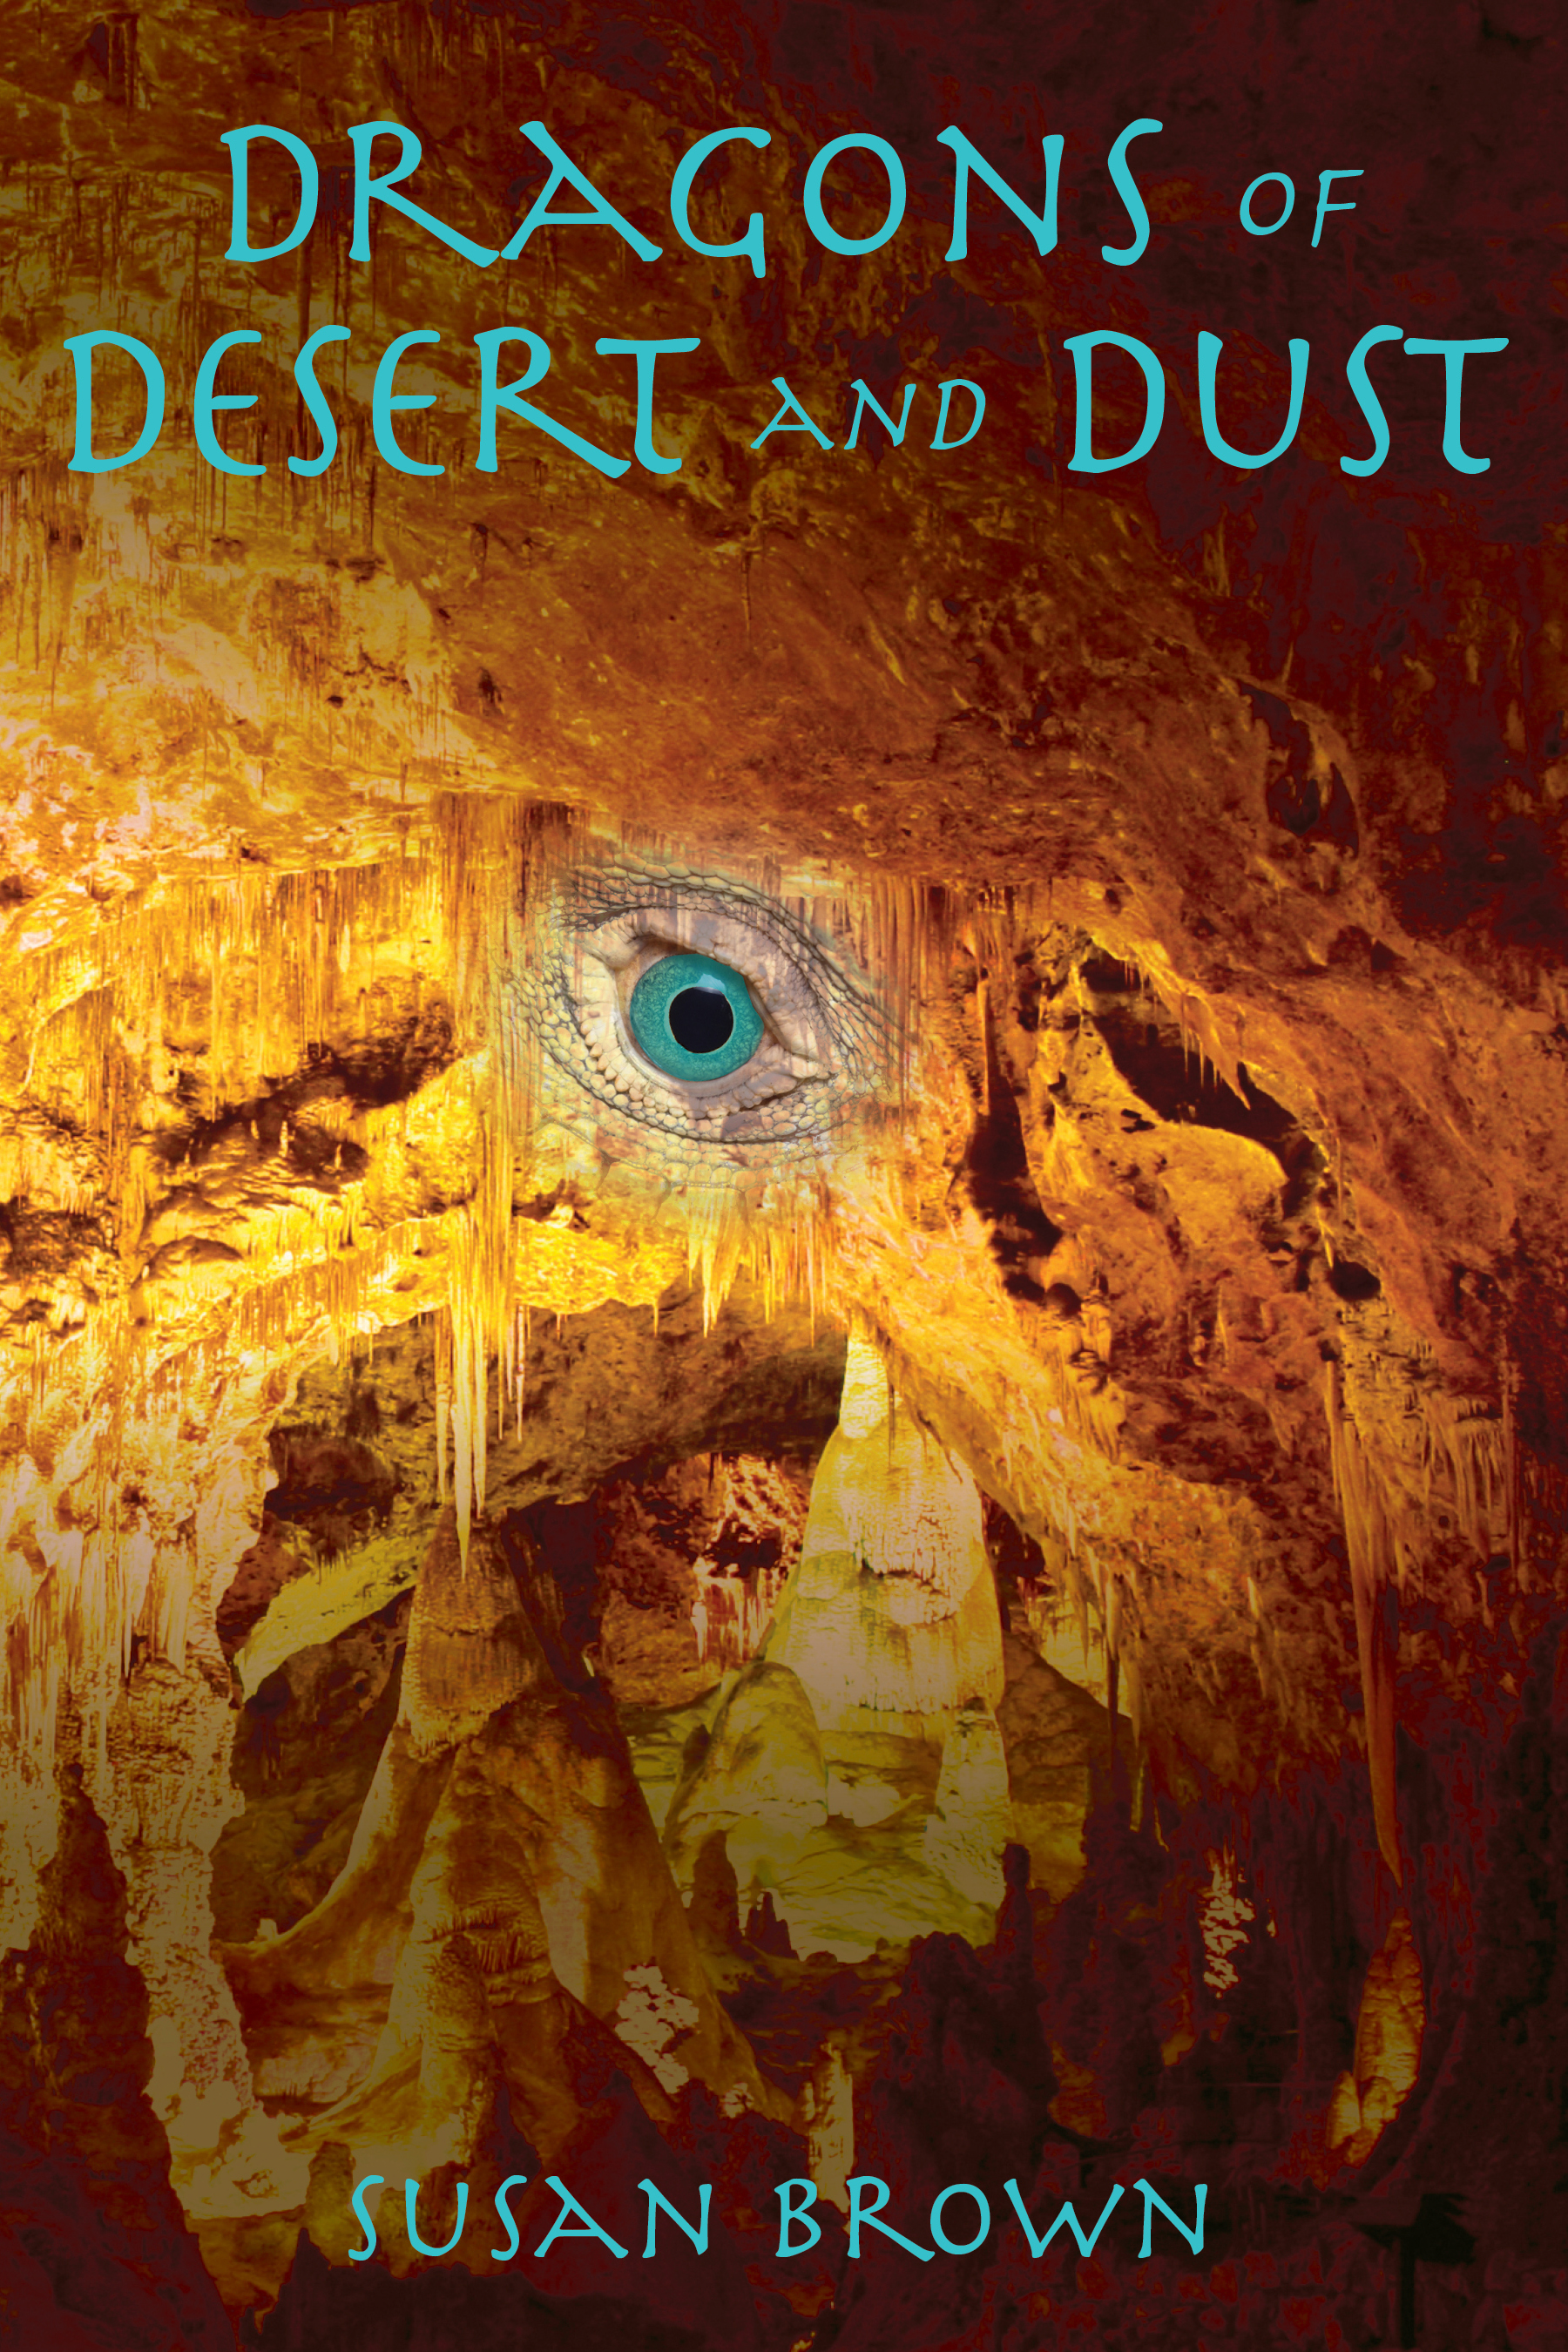 Dragons of Desert and Dust by Susan Brown